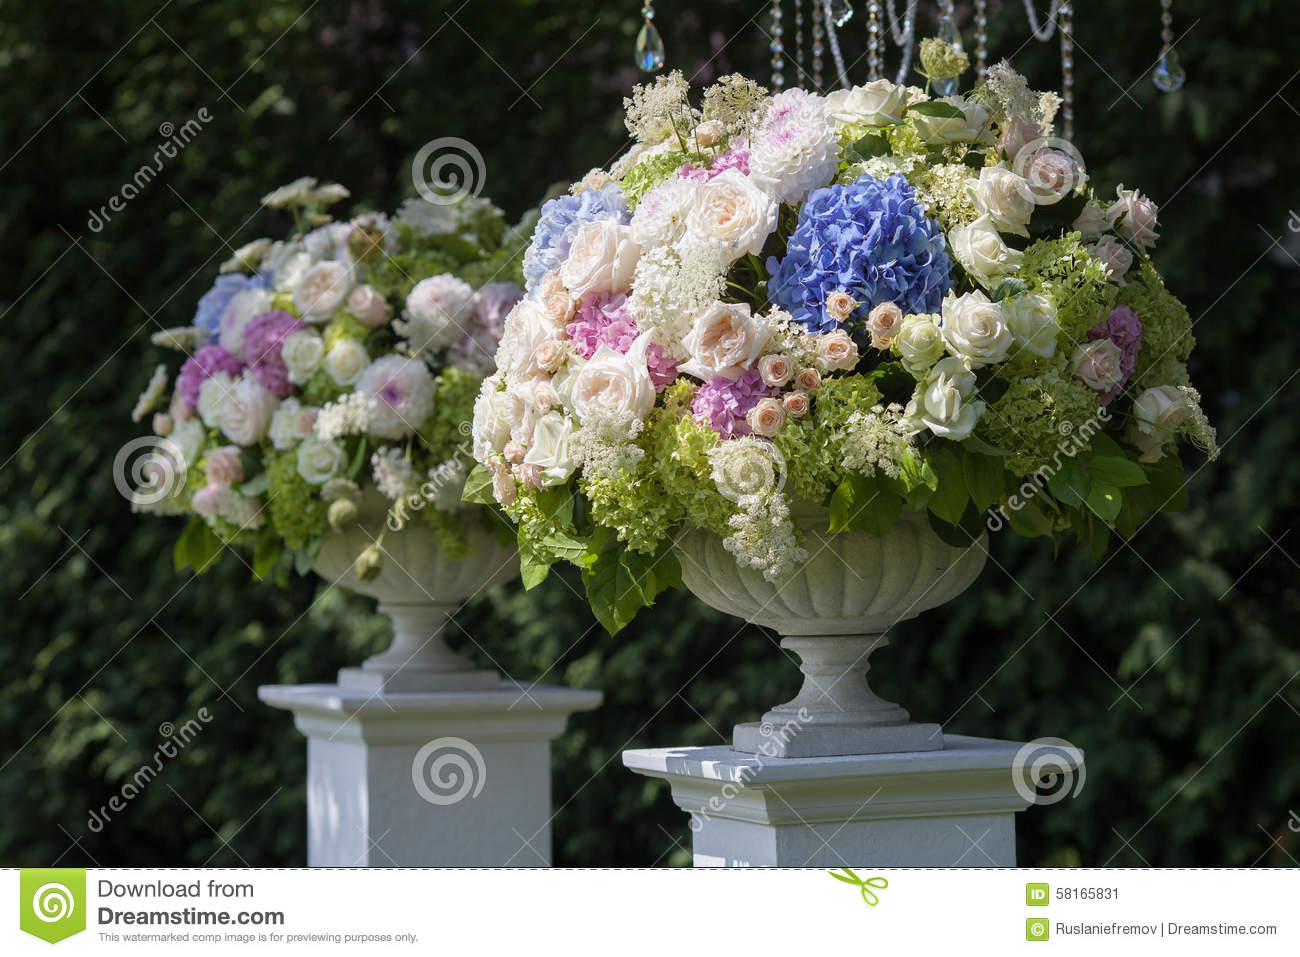 Flowers In A Vase For The Wedding Ceremony Outdoor. Stock